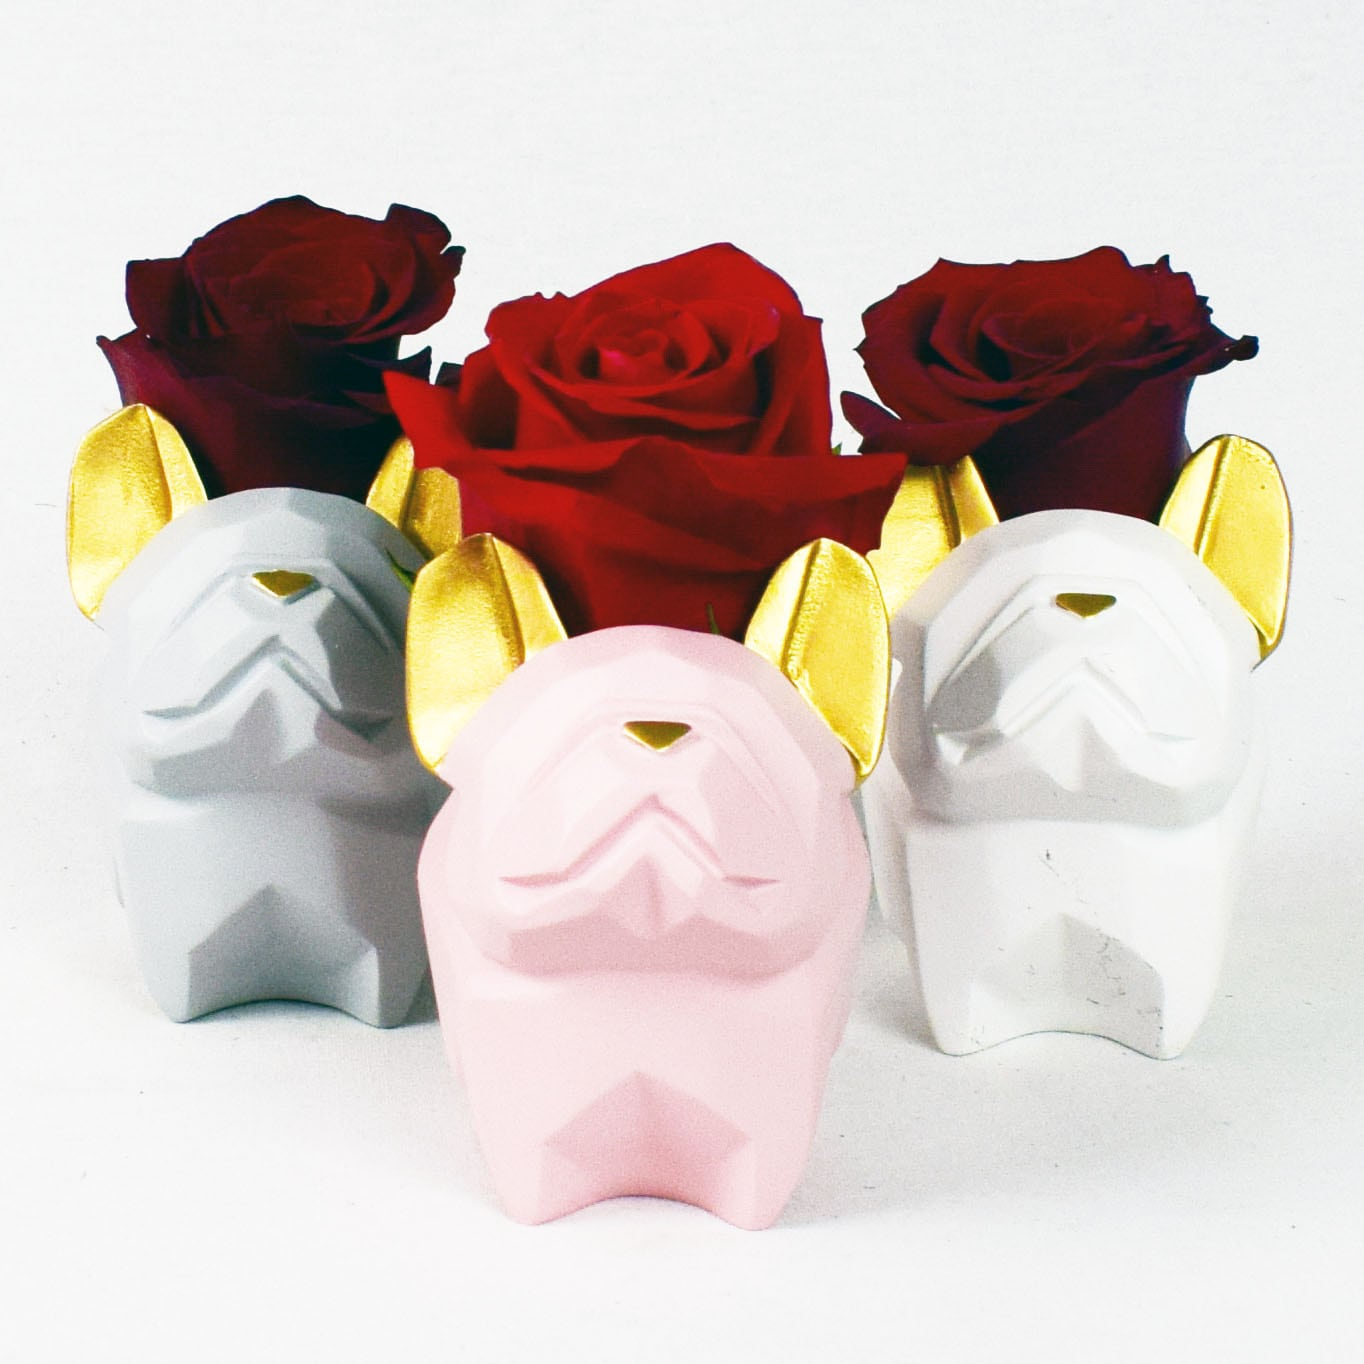 Frenchie Mini Rose Budvase